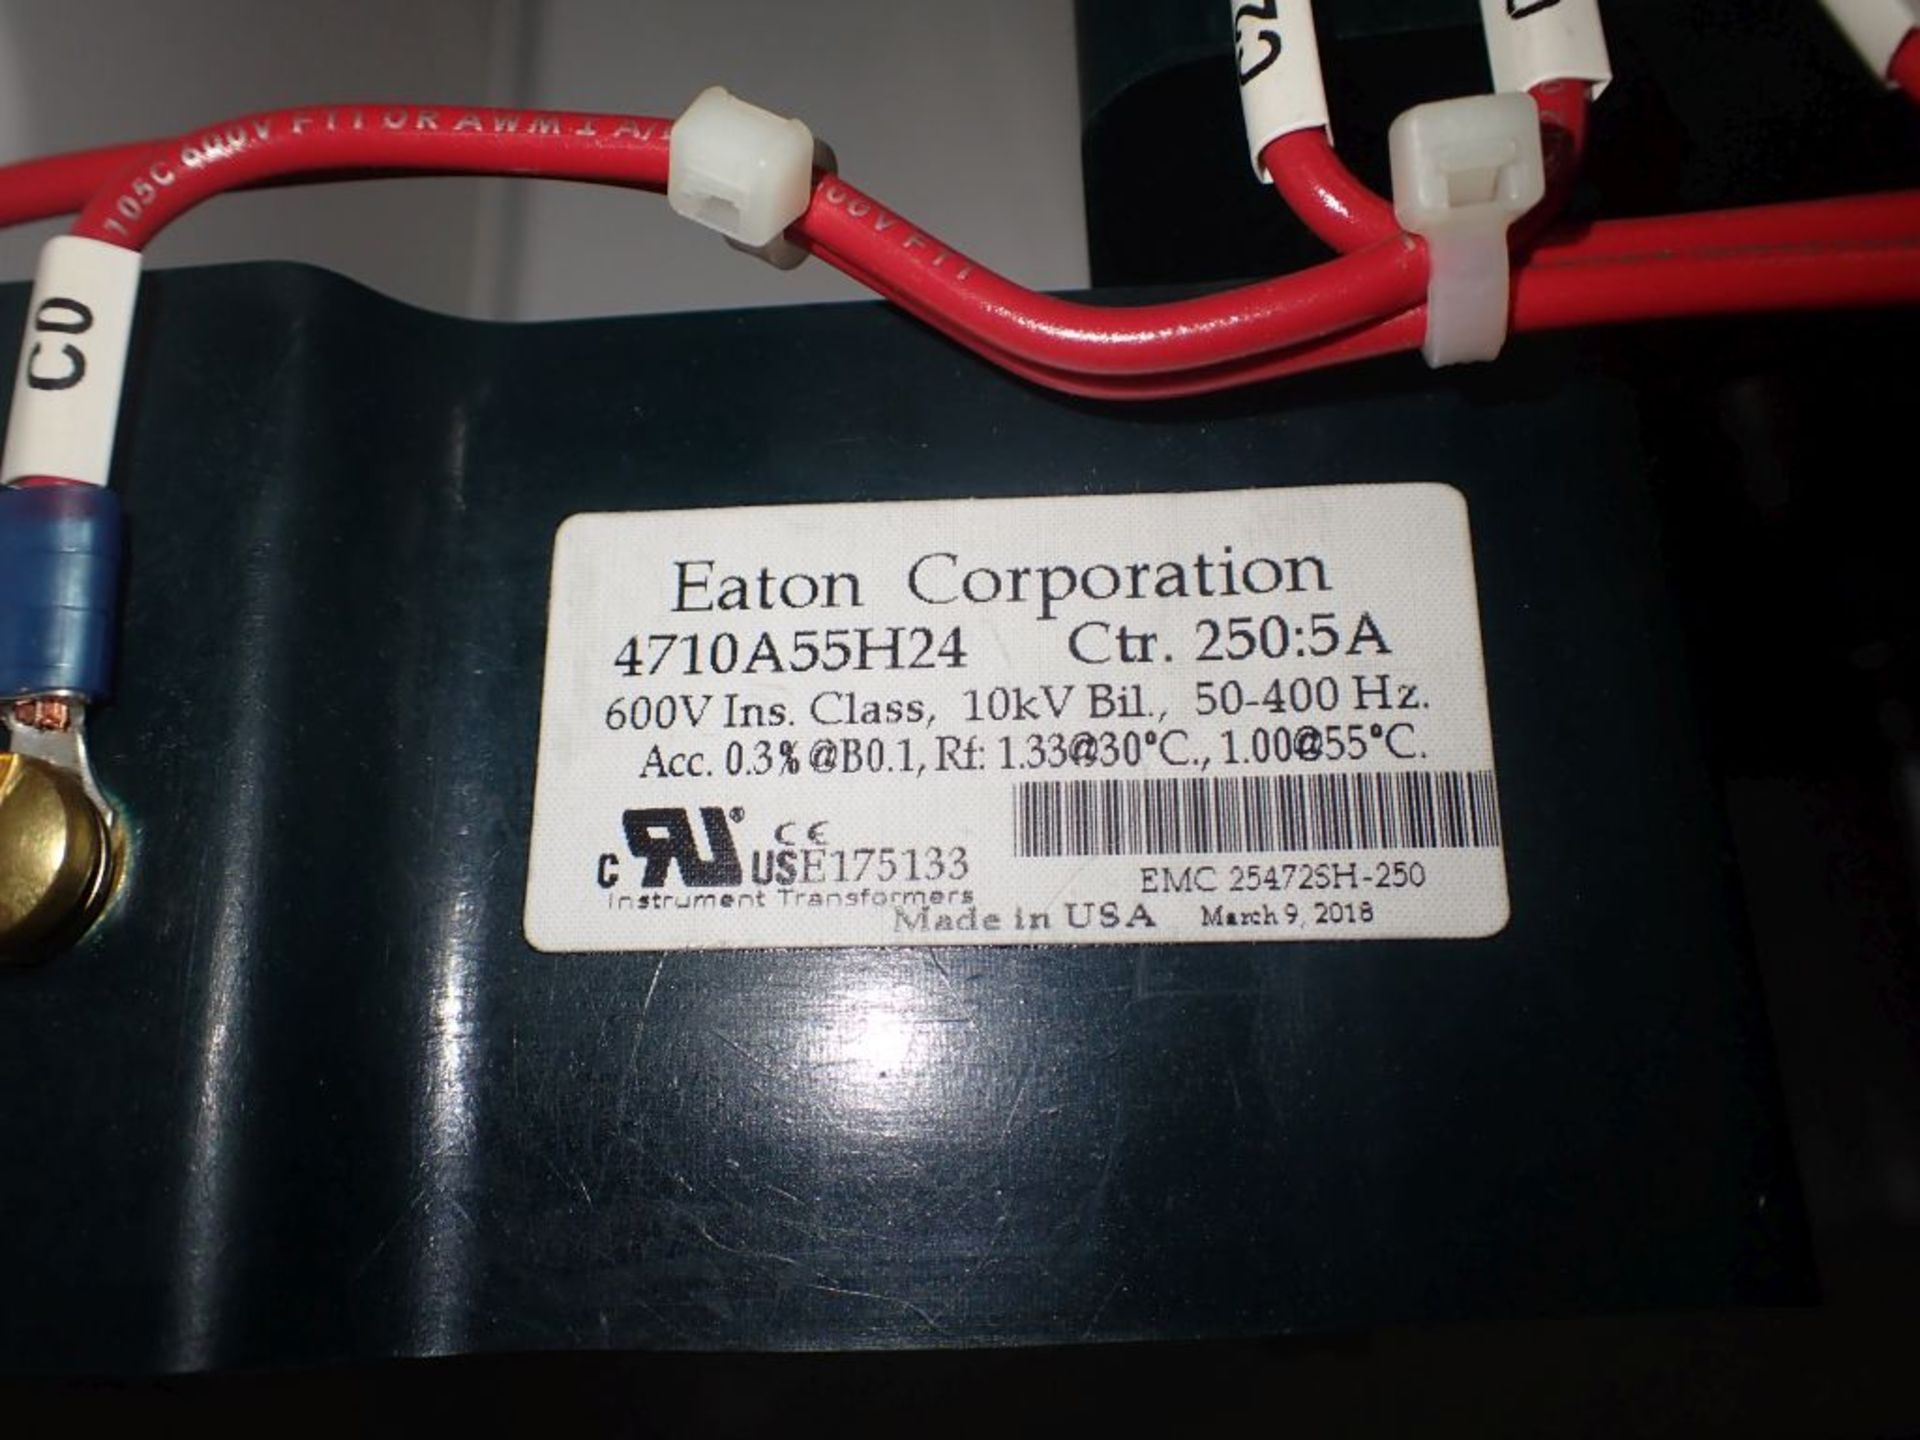 Eaton Freedom Flashgard Motor Control Center | SCR0753278, 480V; (1) INCB-250A, with 400A - Image 22 of 69